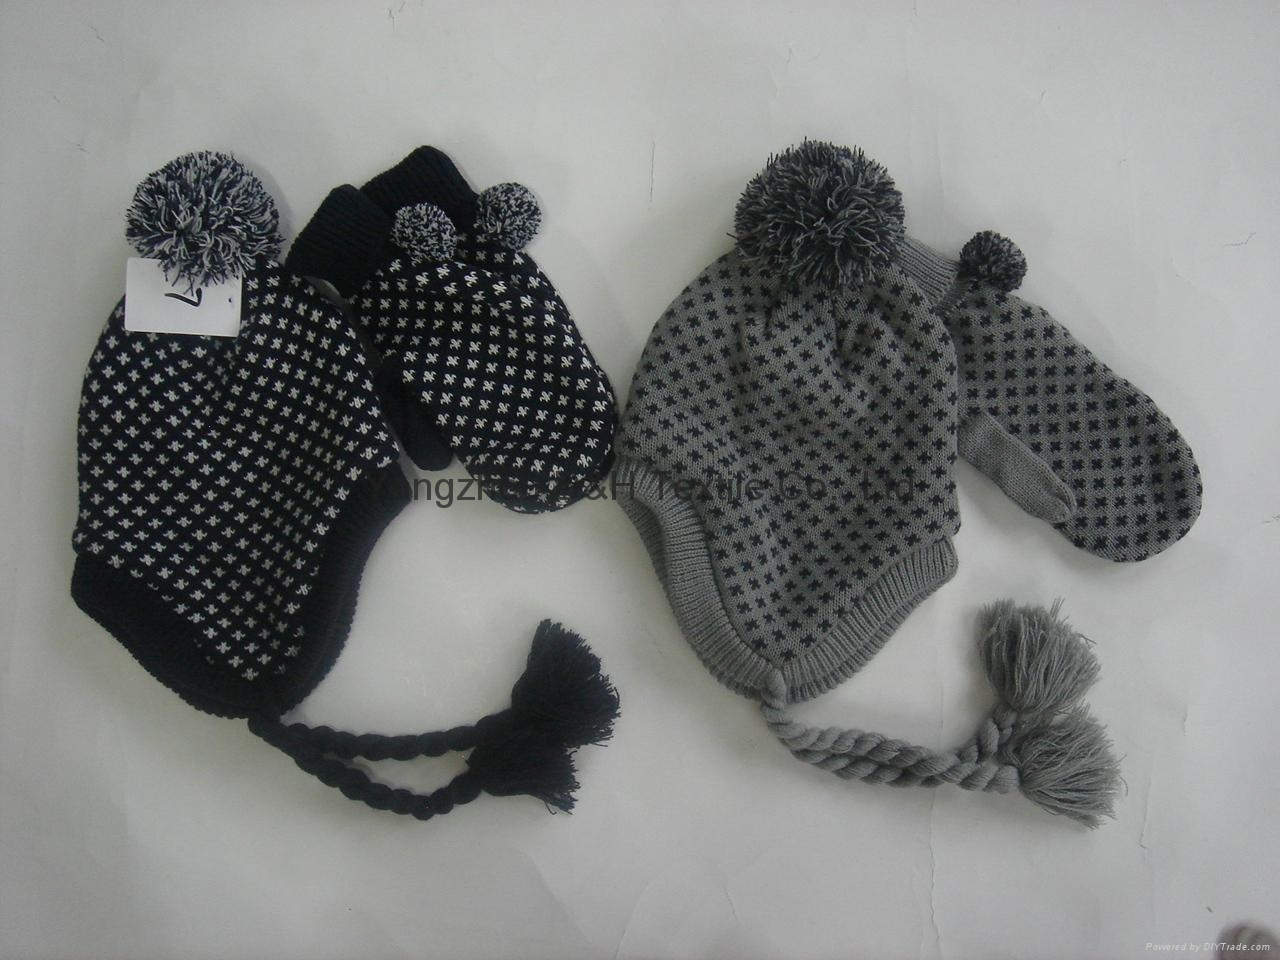 Quality Jacquard Knitted Hat with Ear Flaps &Poms 3